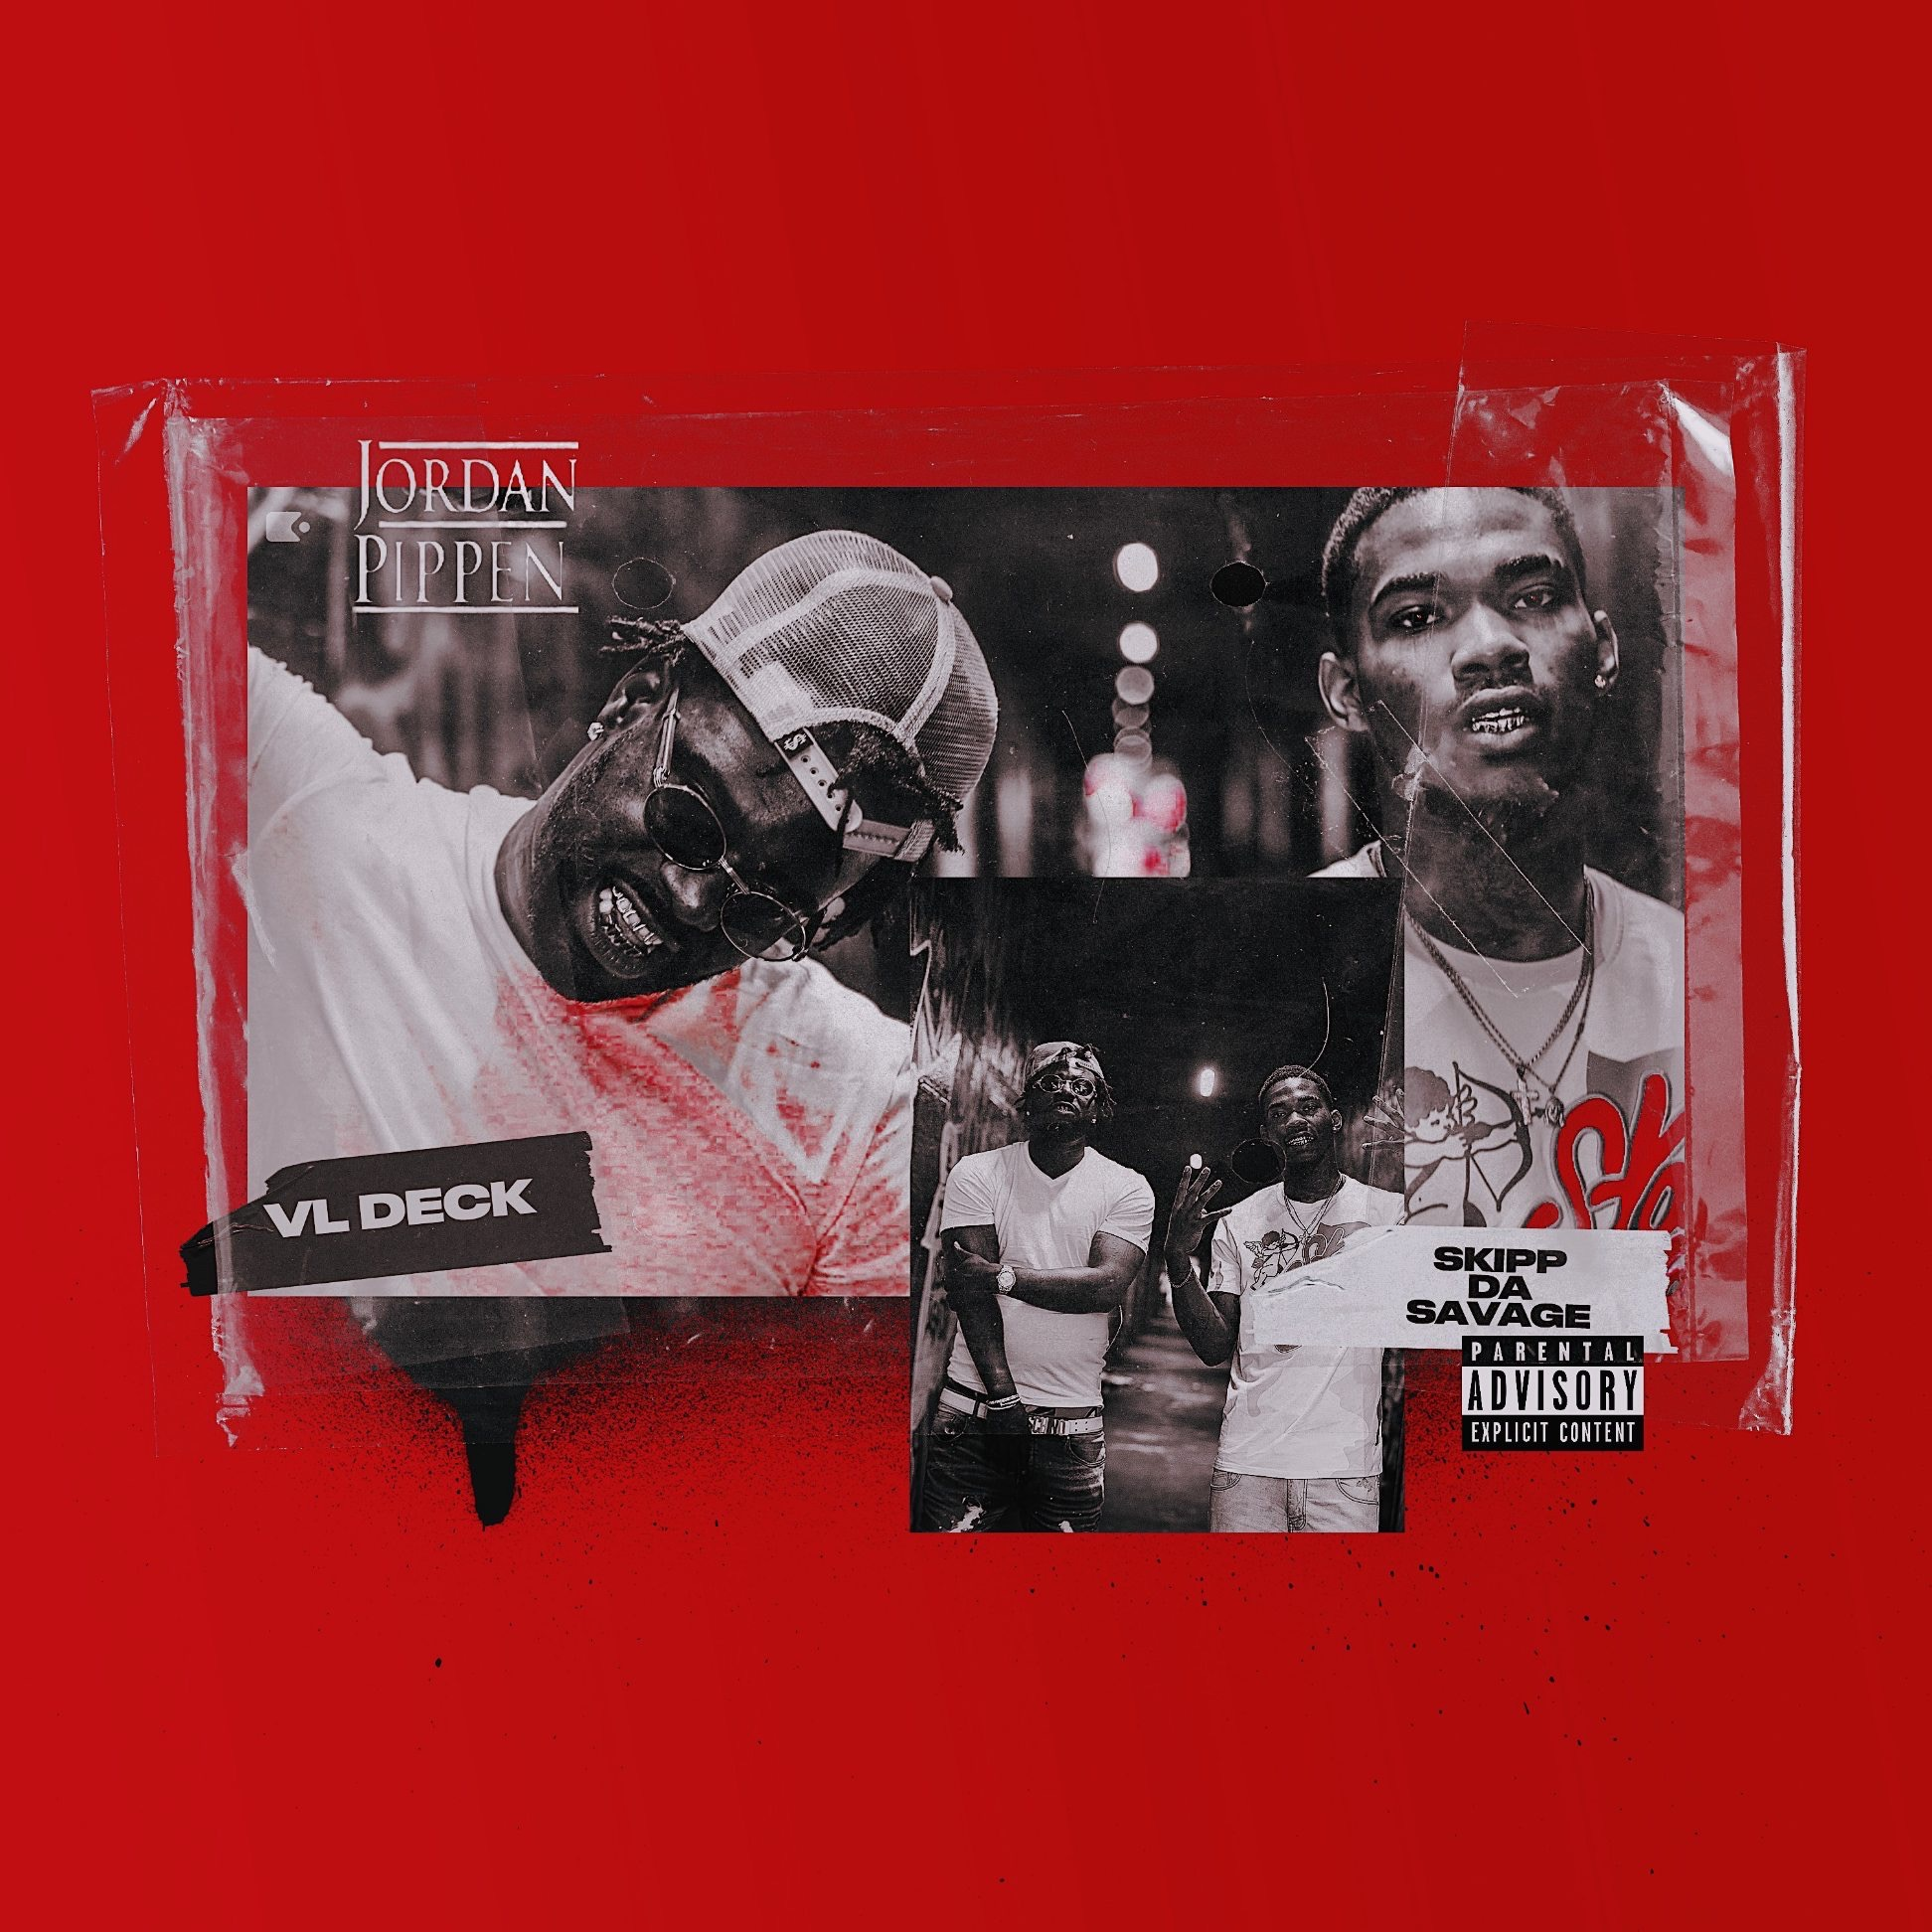 "VL Deck & Skipp Da Savage Collaborate For New EP ""Jordan Pippen"""